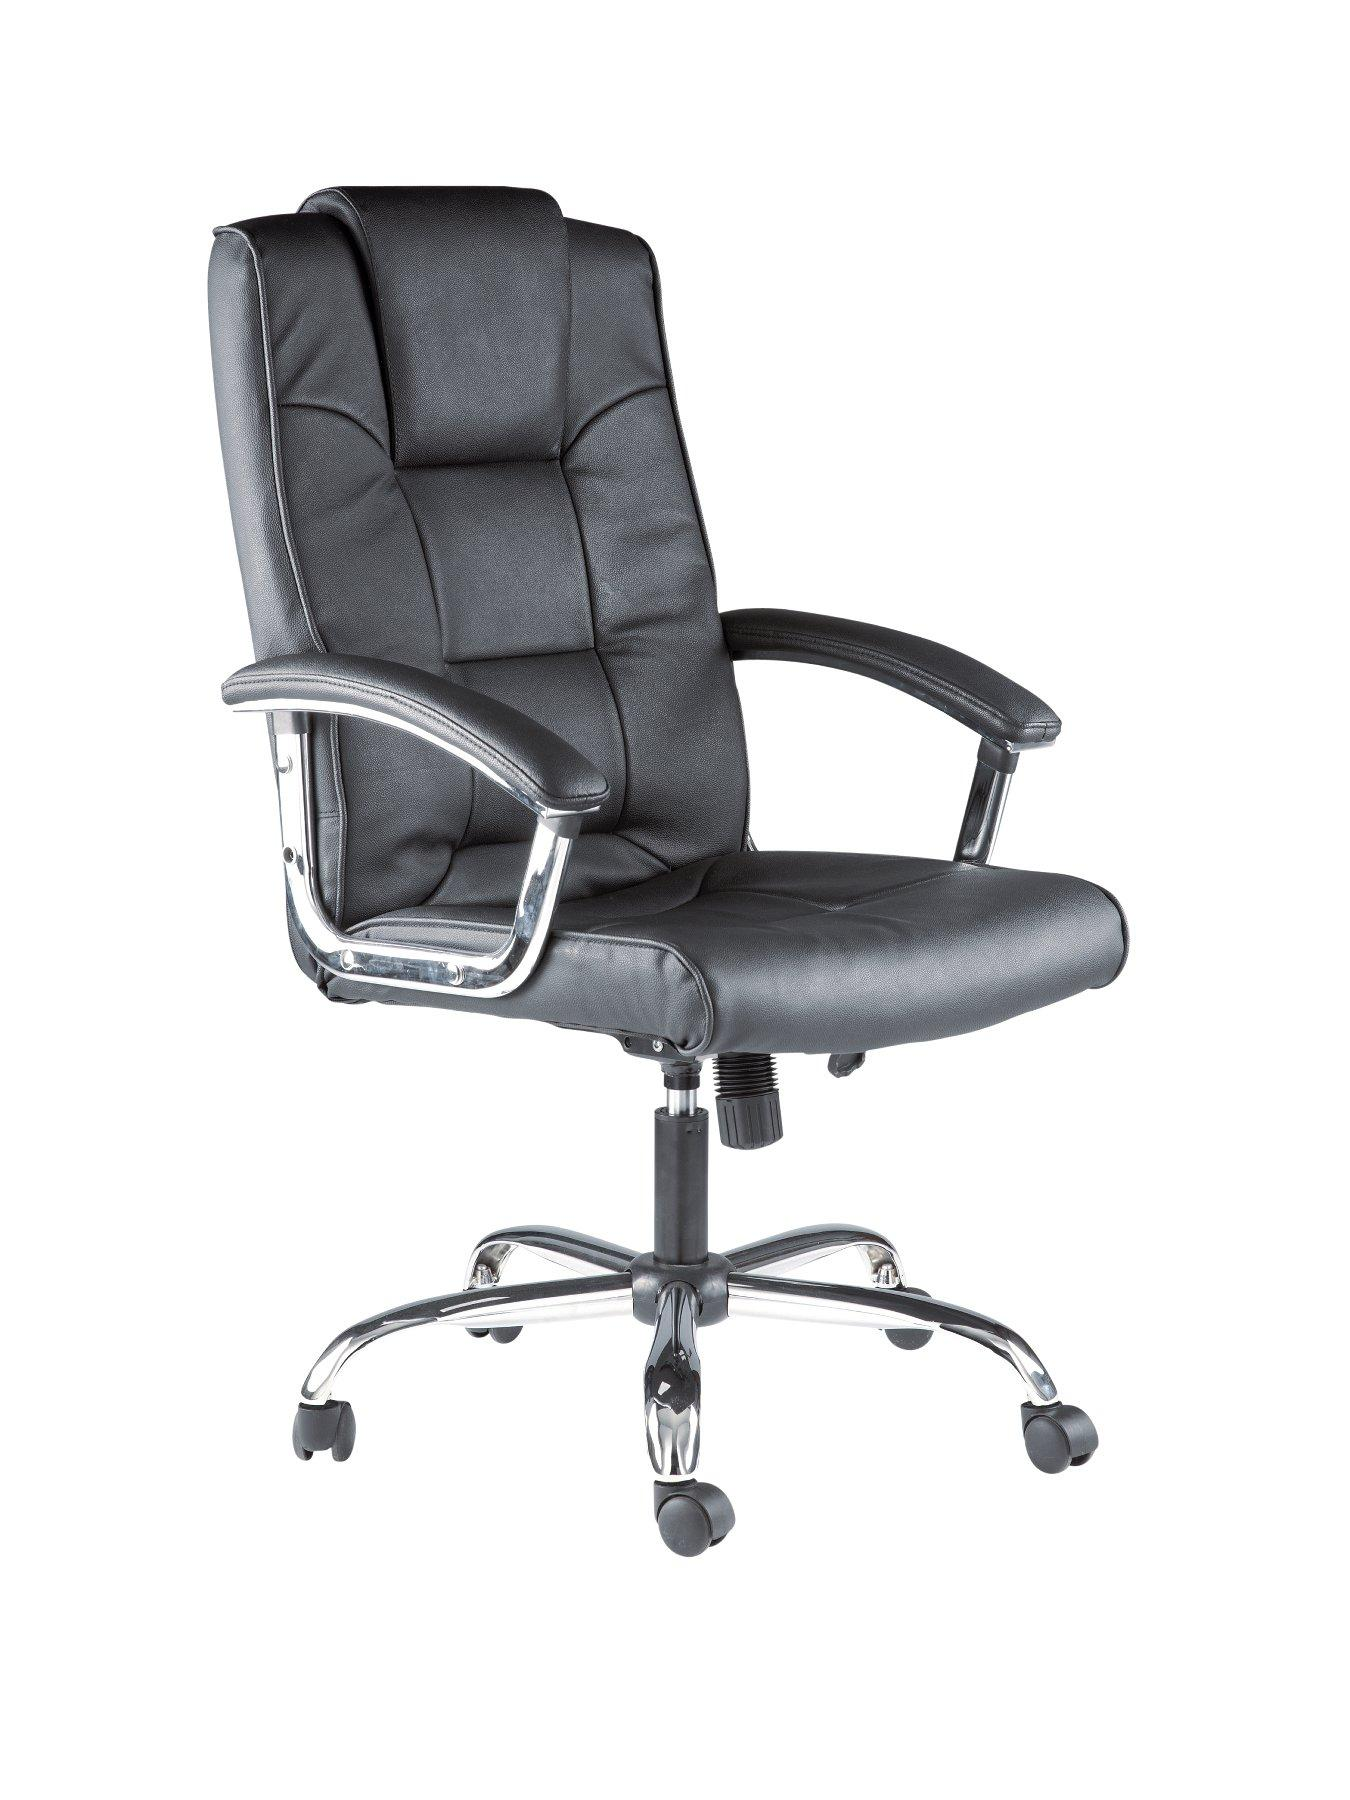 Houston Leather Office Chair - Black, Black,Cream